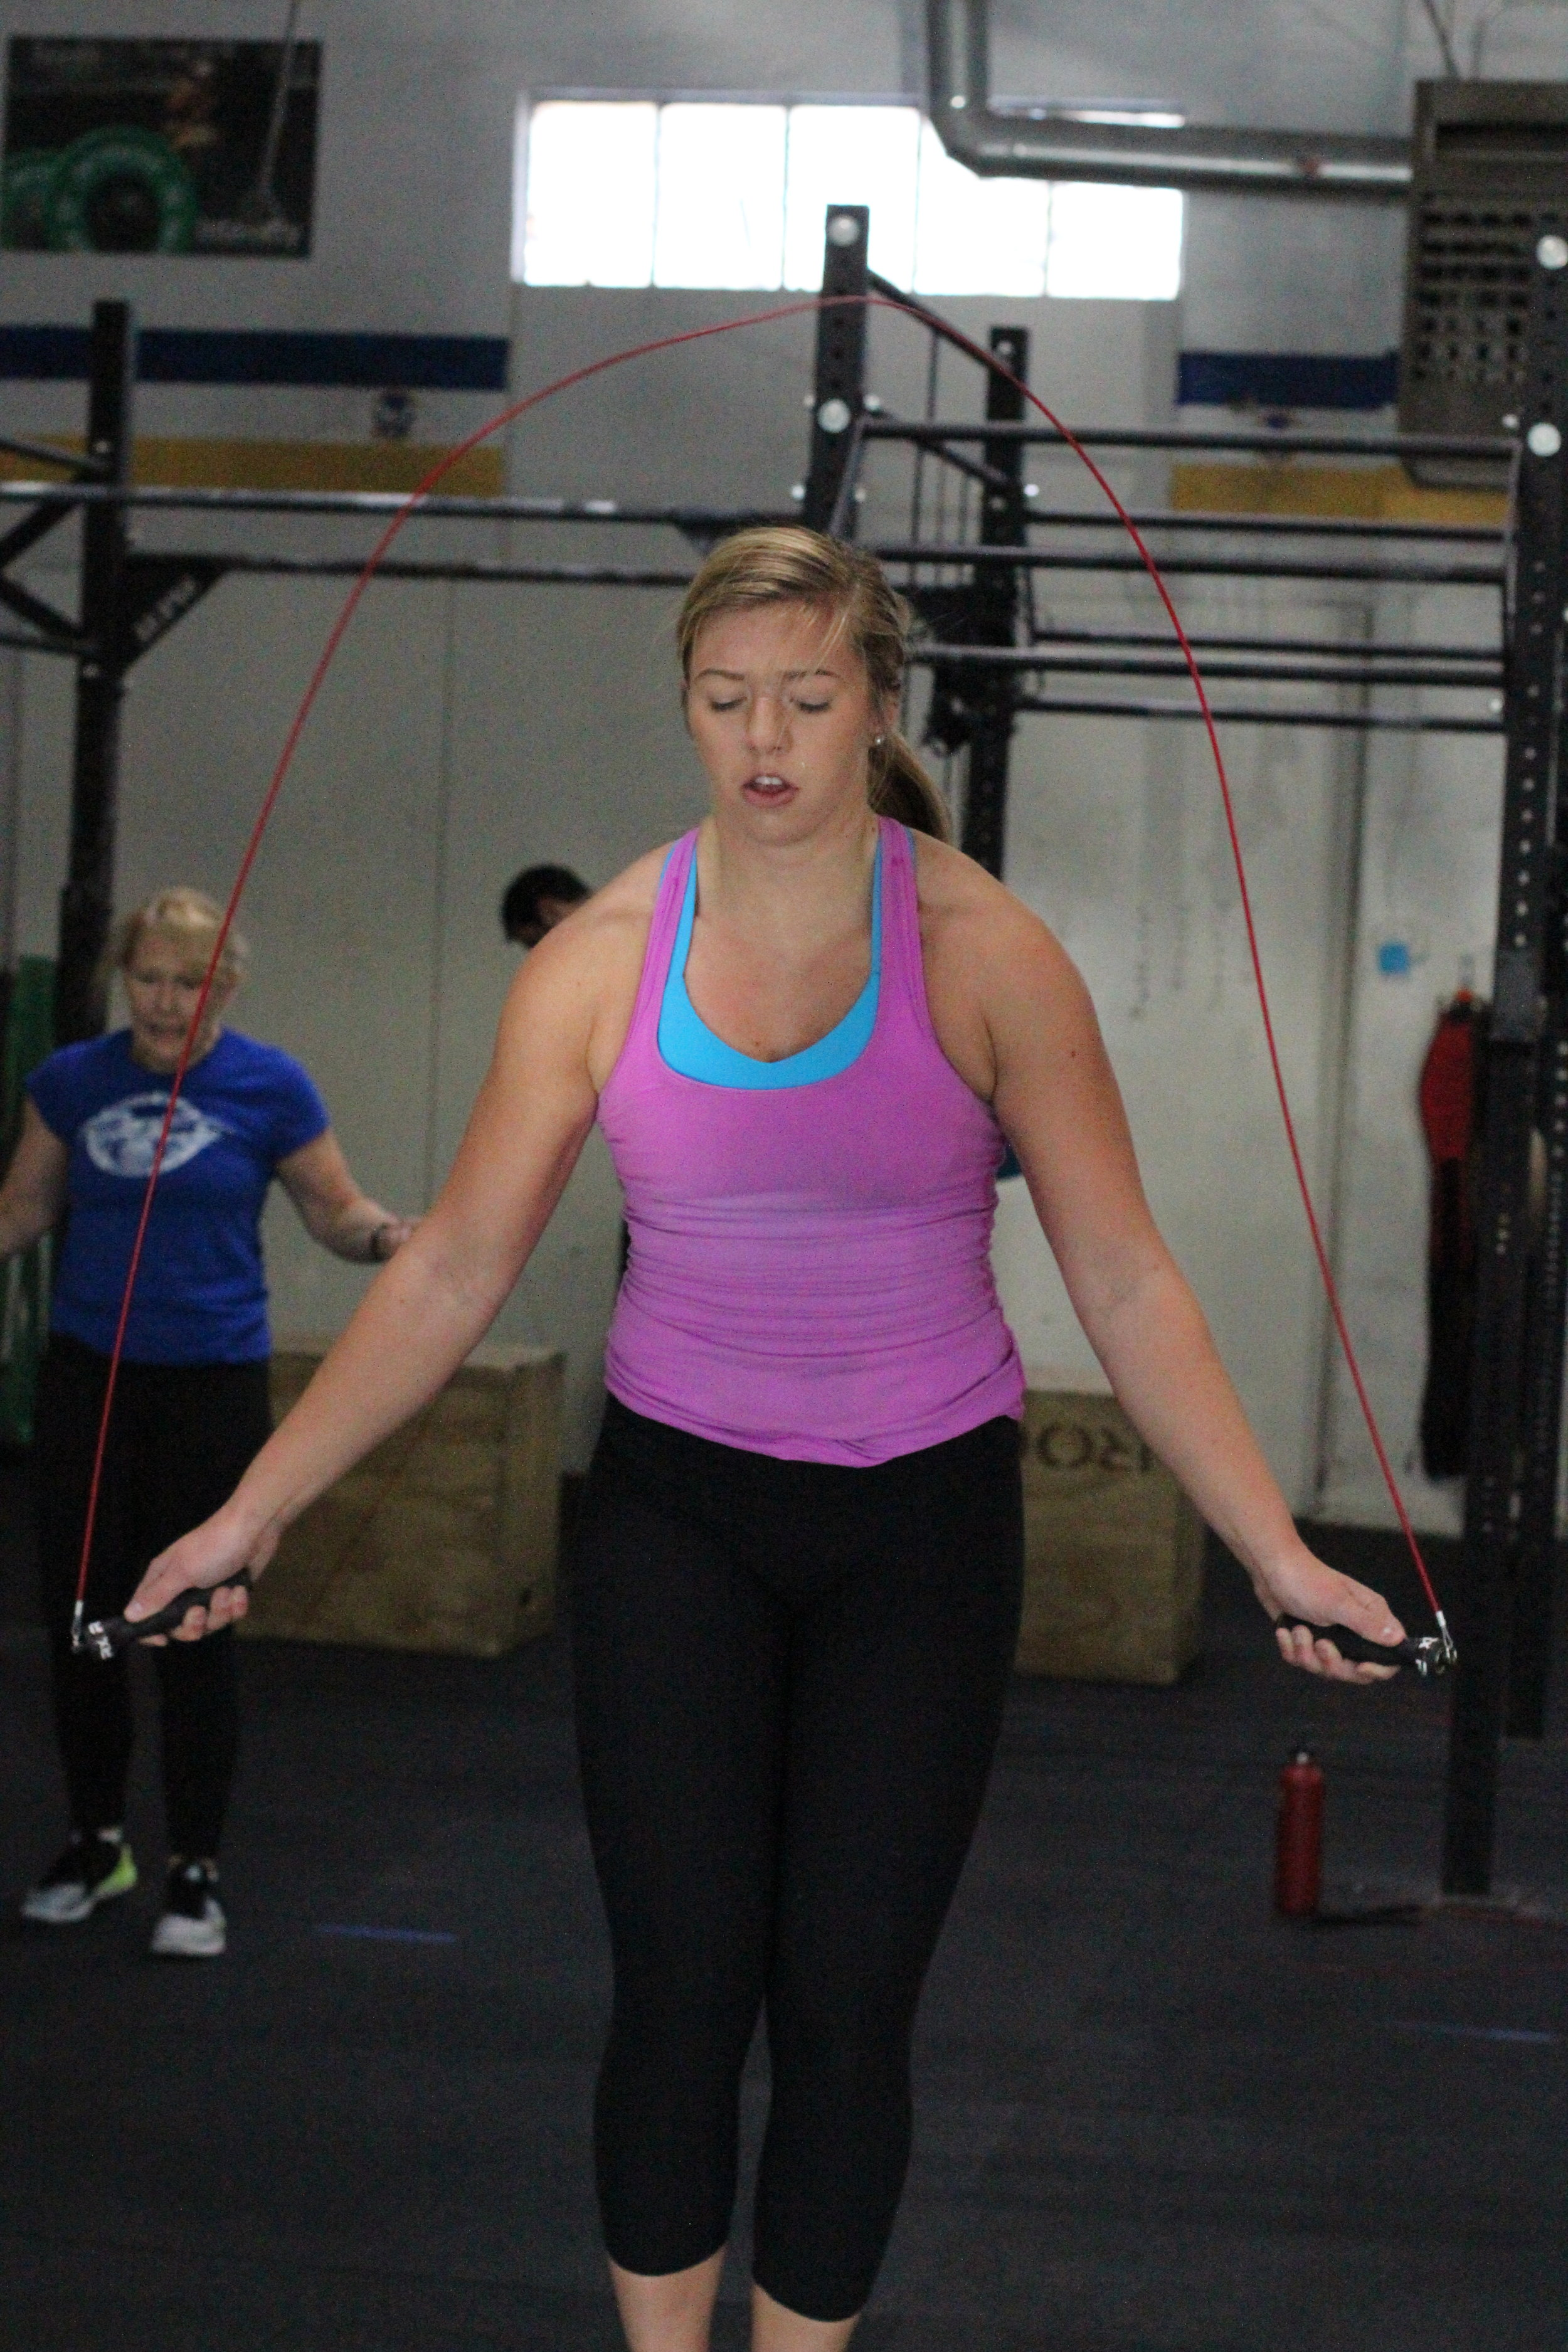 PVCF athlete,Bronwyn Shinnick gets in those double unders! Awesome work!